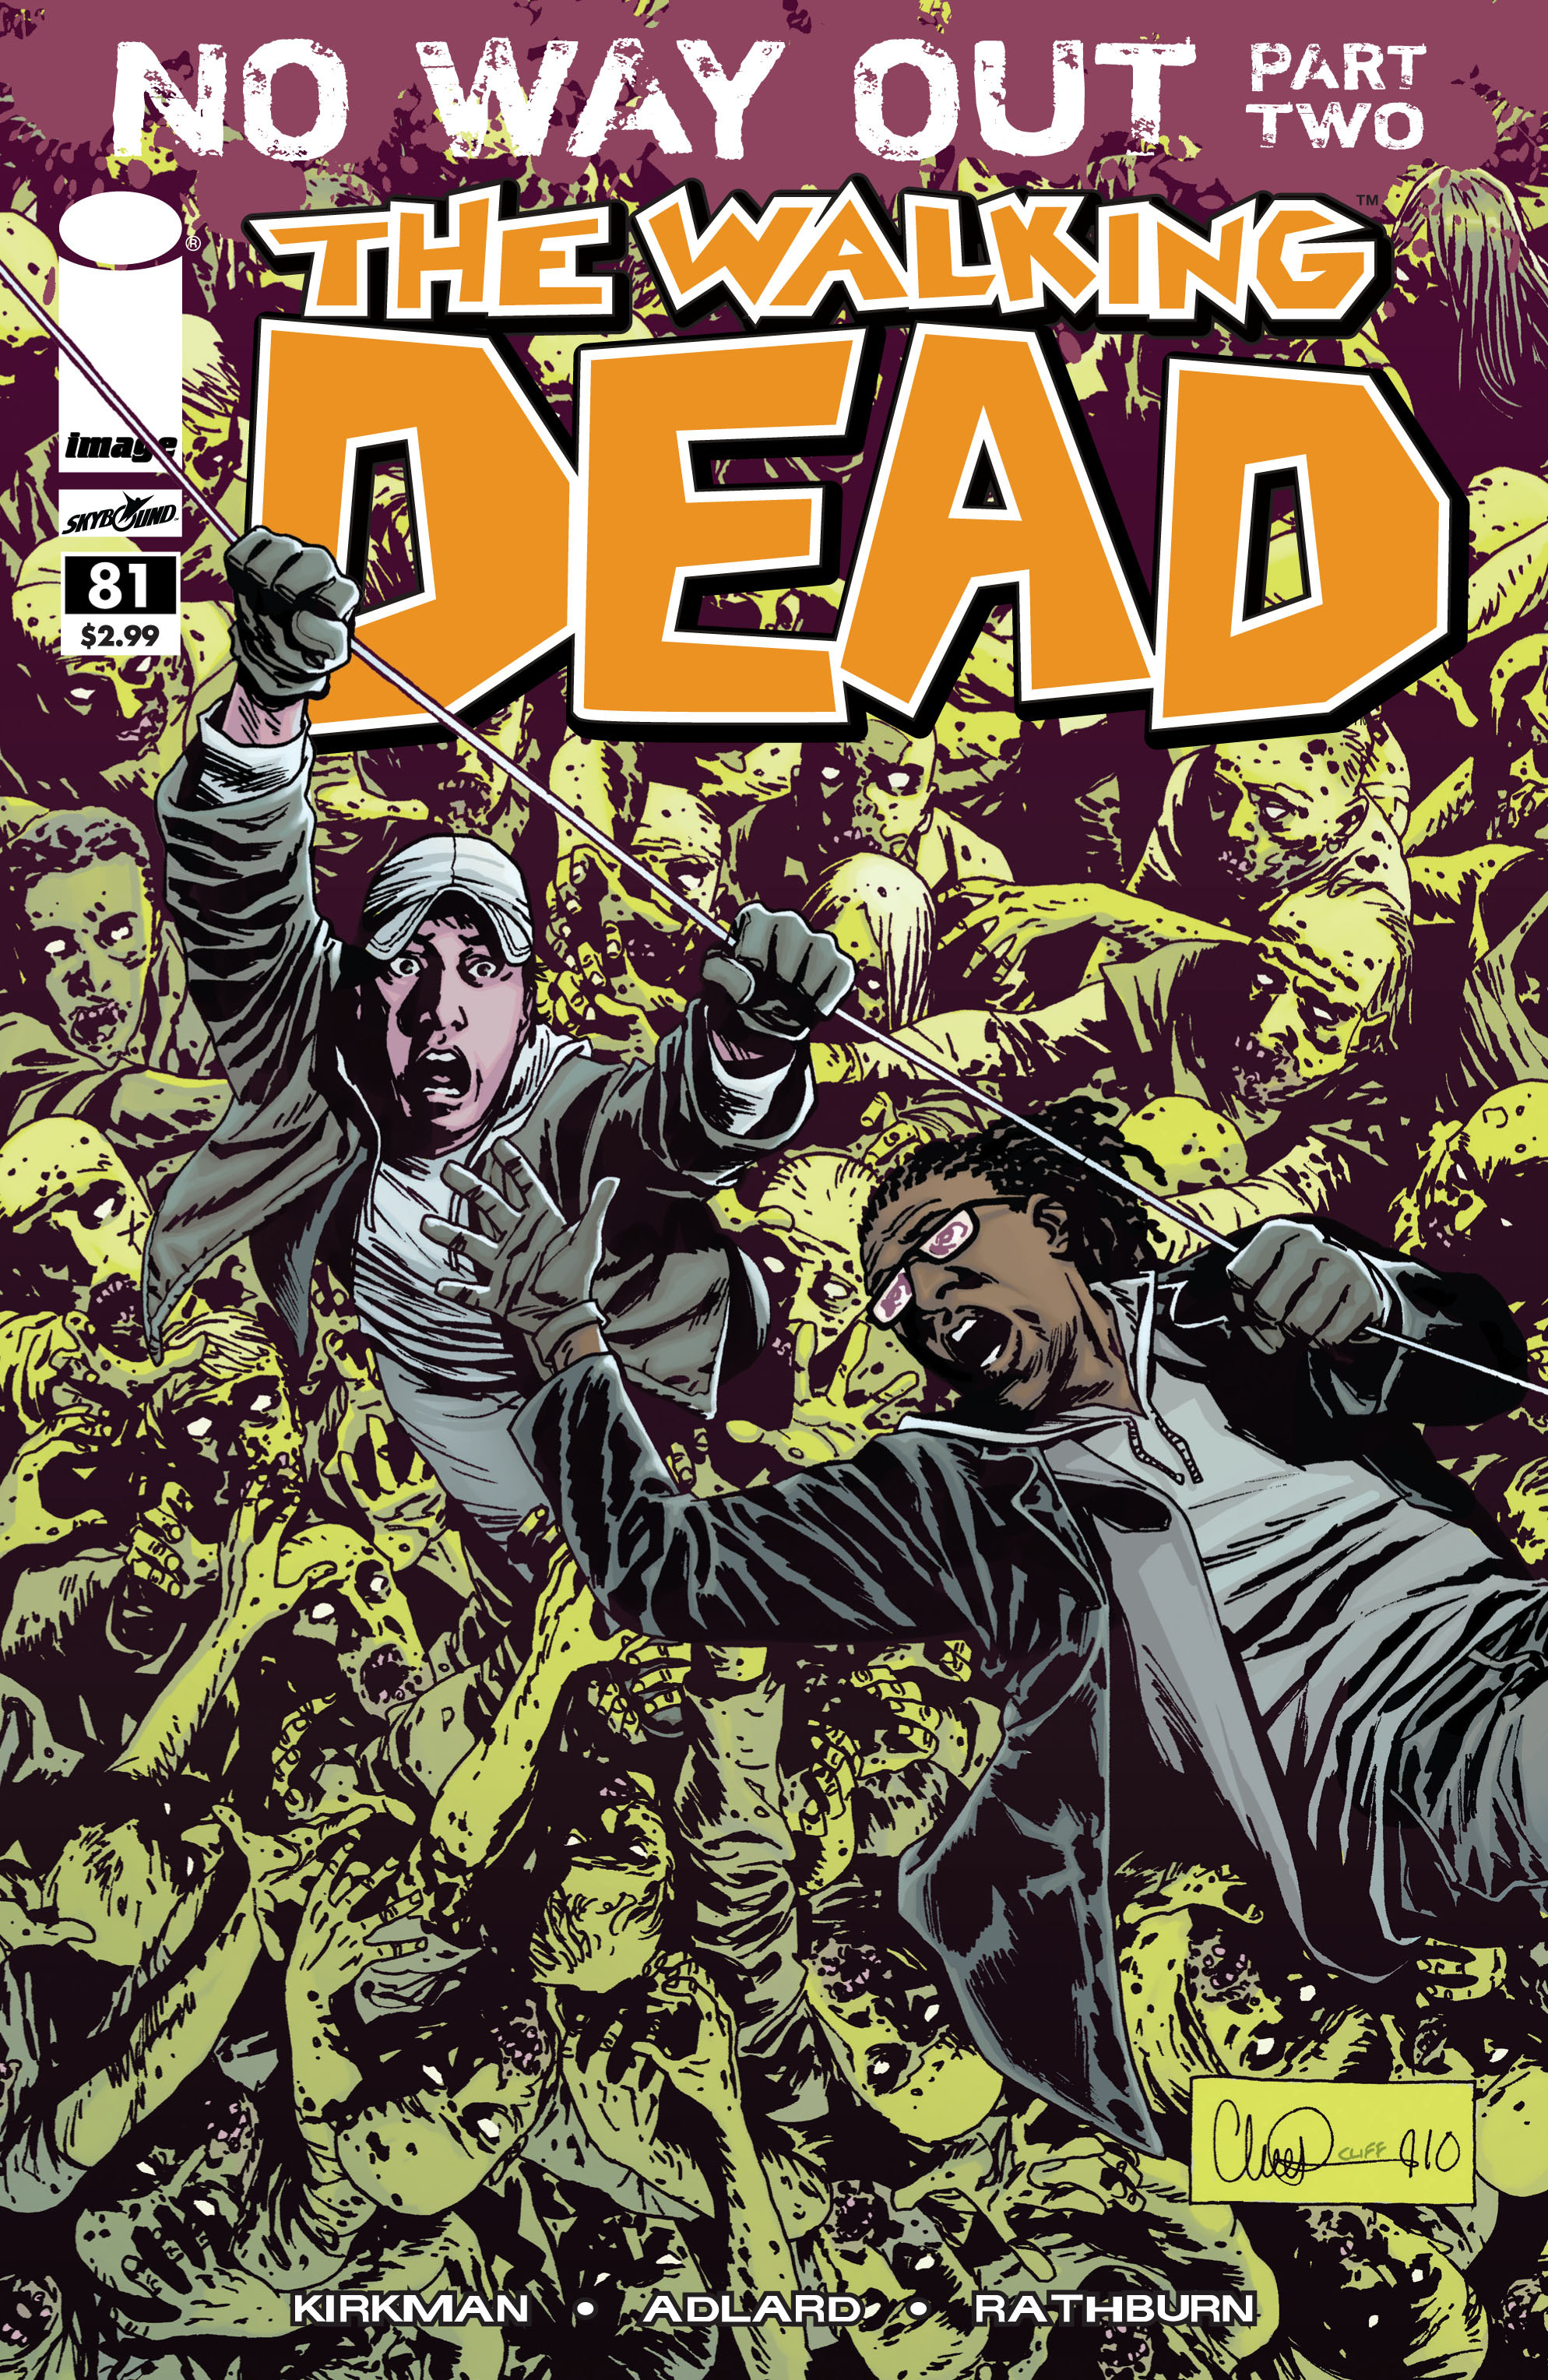 The Walking Dead 81 Page 1